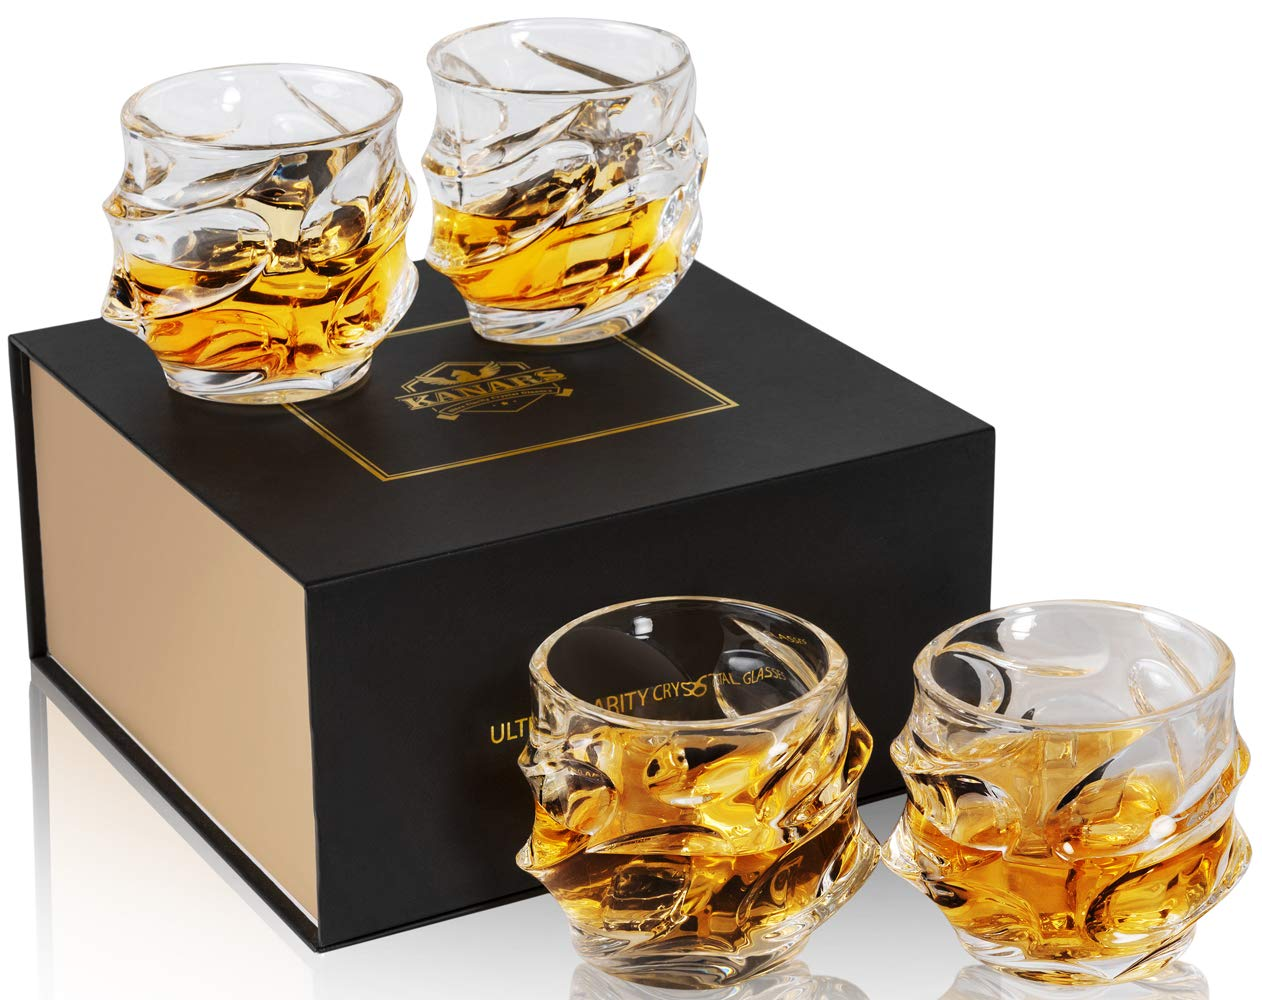 KANARS Emperor Whiskey Glasses - Set of 4 - Rock Style Old Fashioned Cocktail Glass - Premium Crystal Tasting Tumblers for Scotch or Bourbon - Unique Elegant Gift Box For Wedding